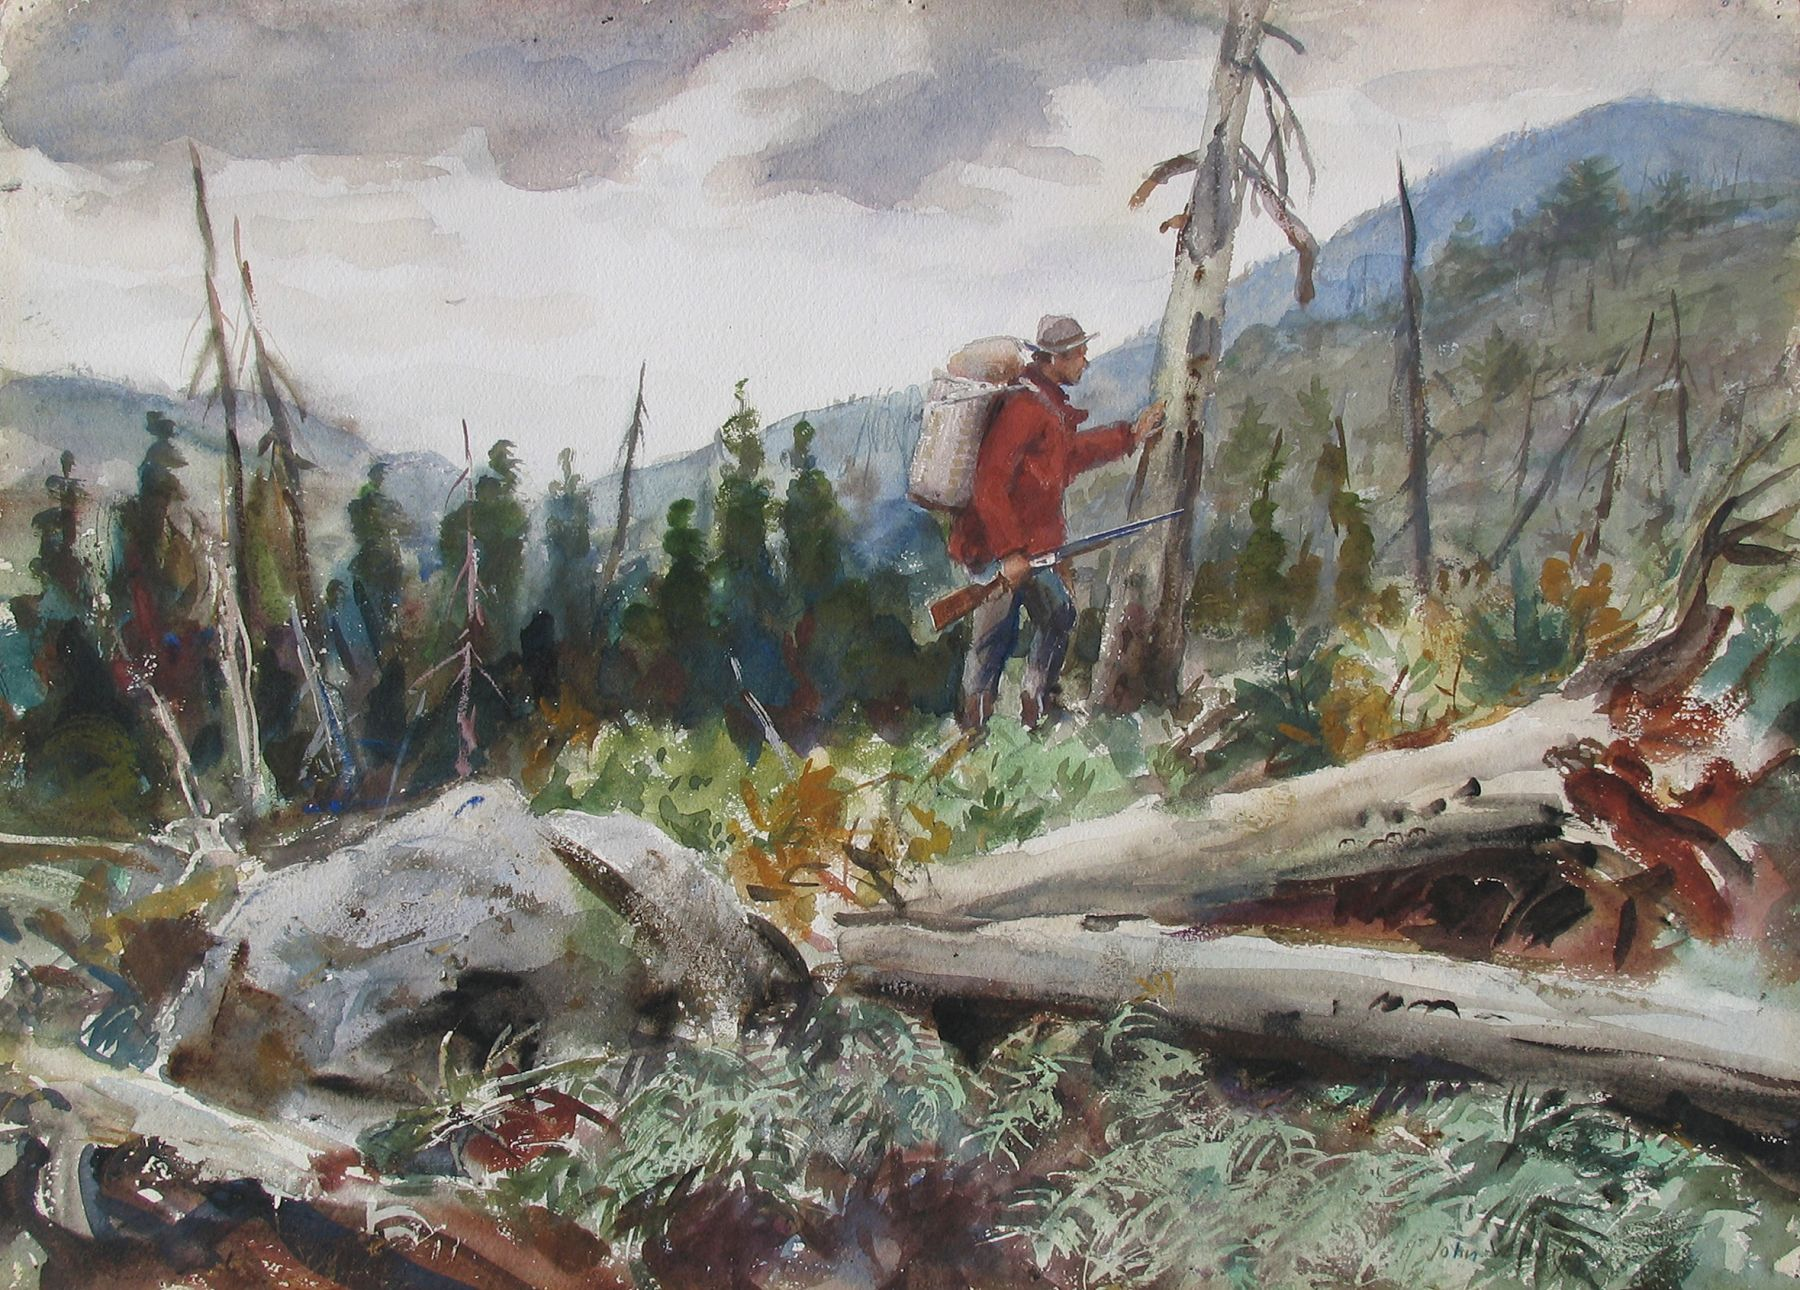 John Whorf, Bear Country